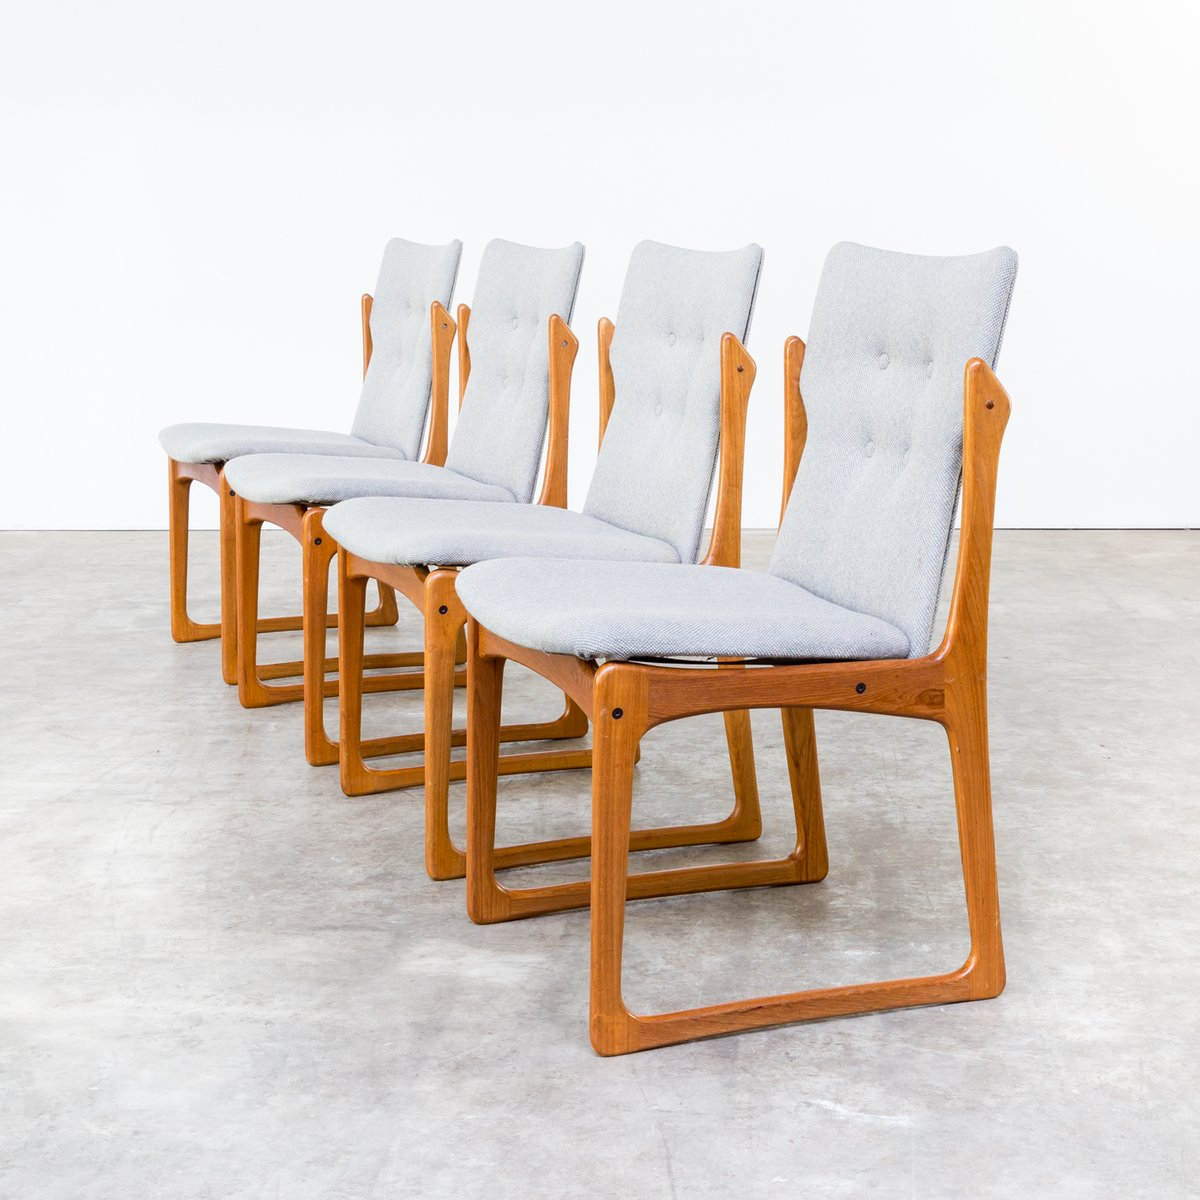 Mid Century Dining Room Chairs From Vamdrup Stolefabrik Set Of 4